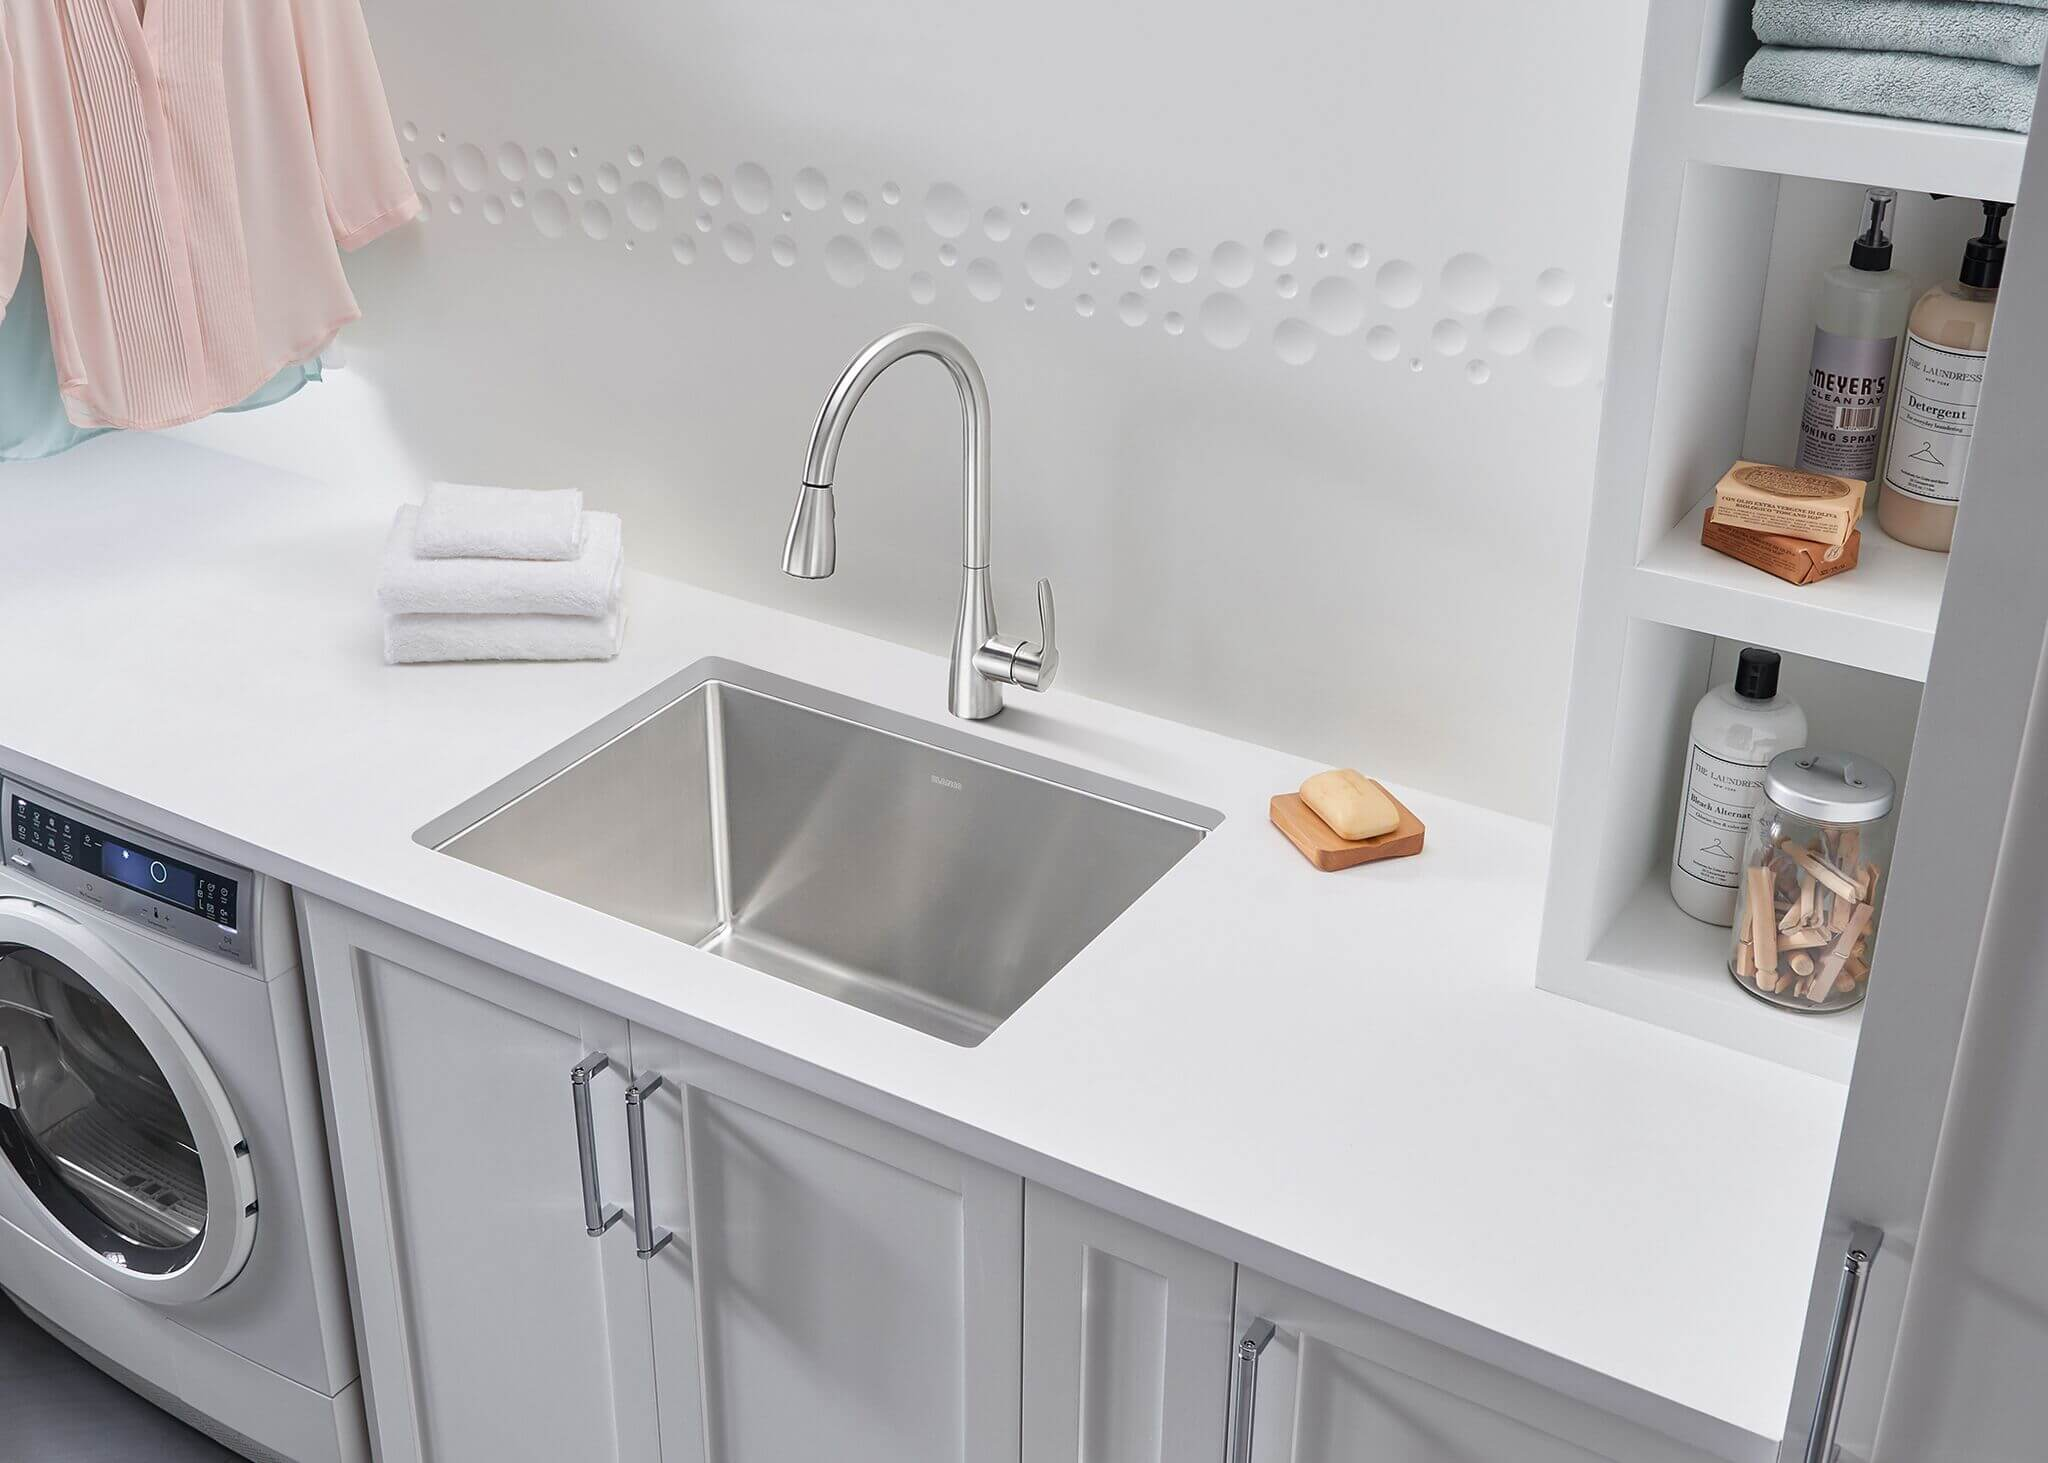 Laundry room - BLANCO is the leader in laundry room sink designs.